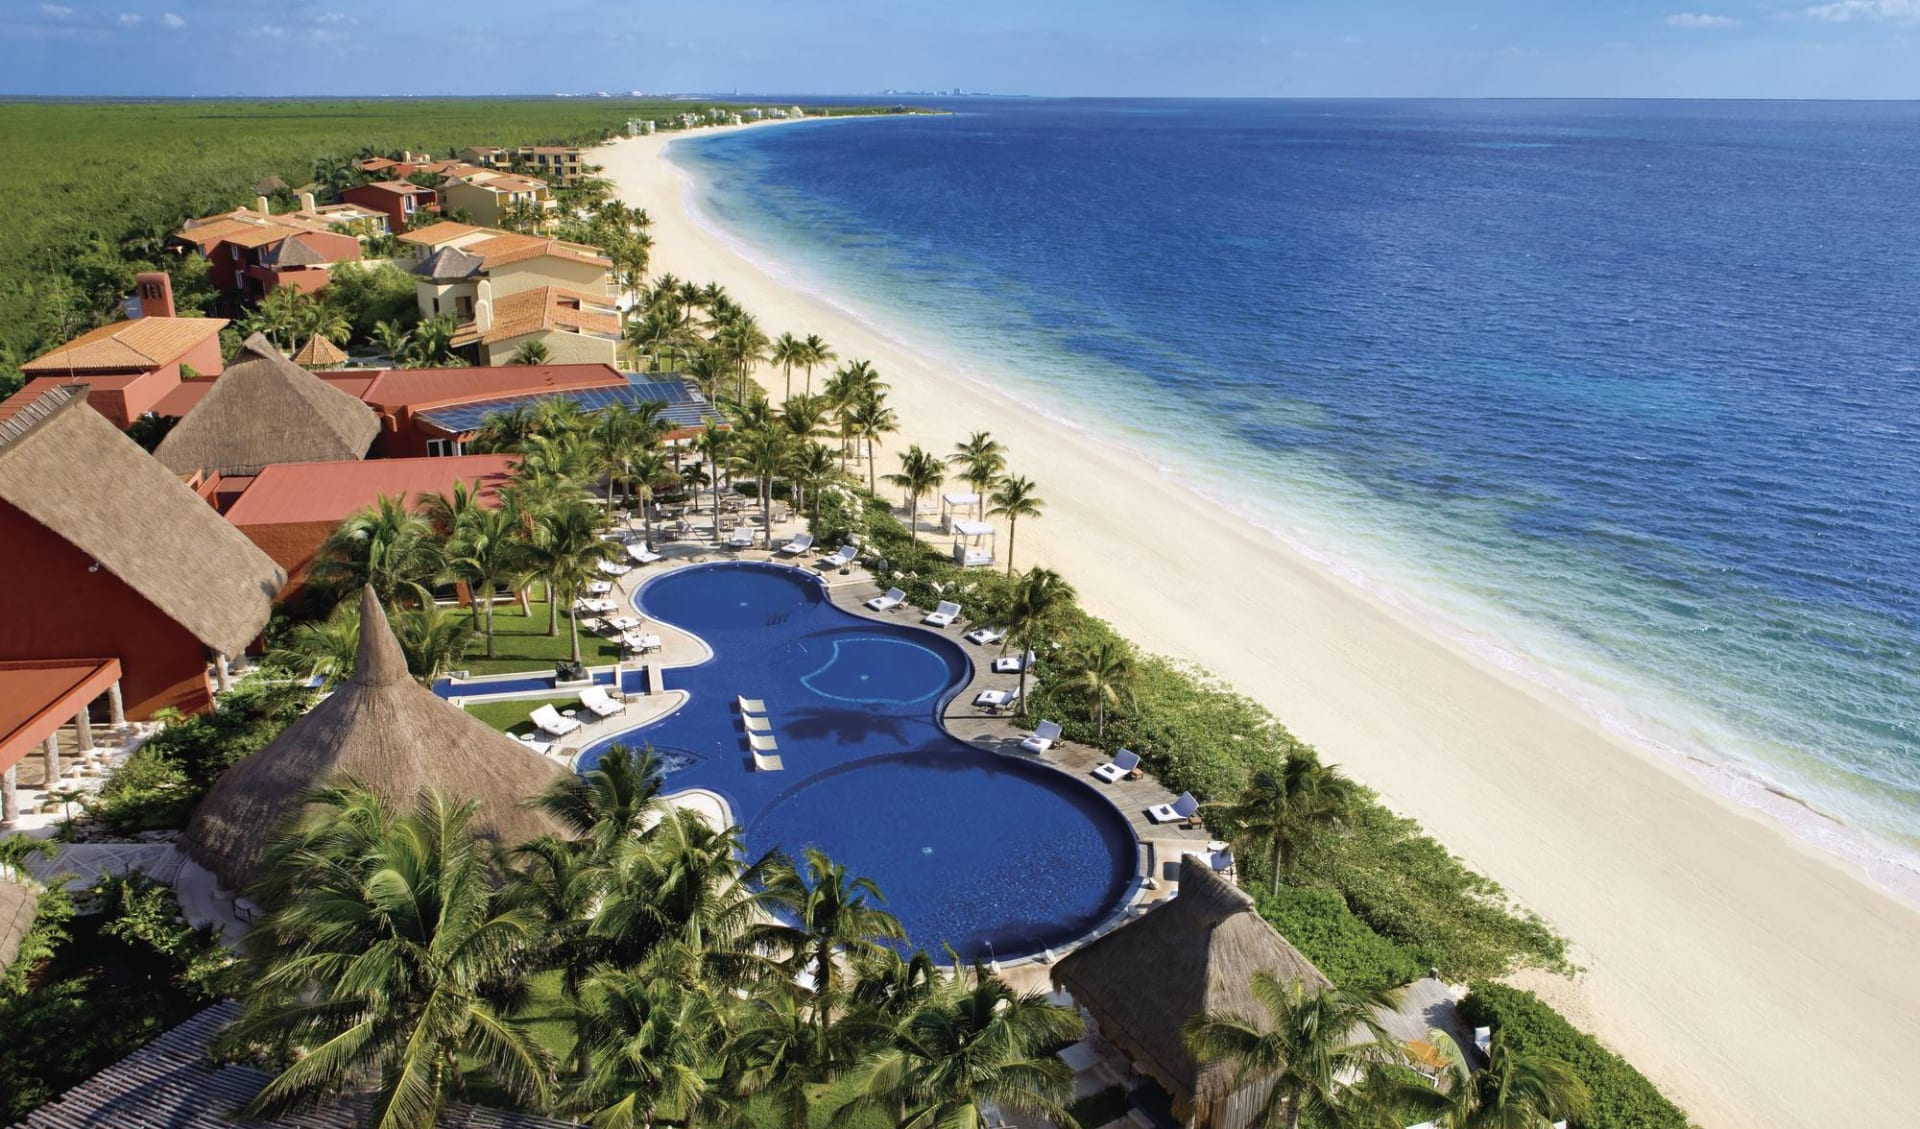 Zoëtry Agua Punta Cana:  exterior Zoetry Paraiso - Aussenansicht mit Pool Richtung Strand Aerial